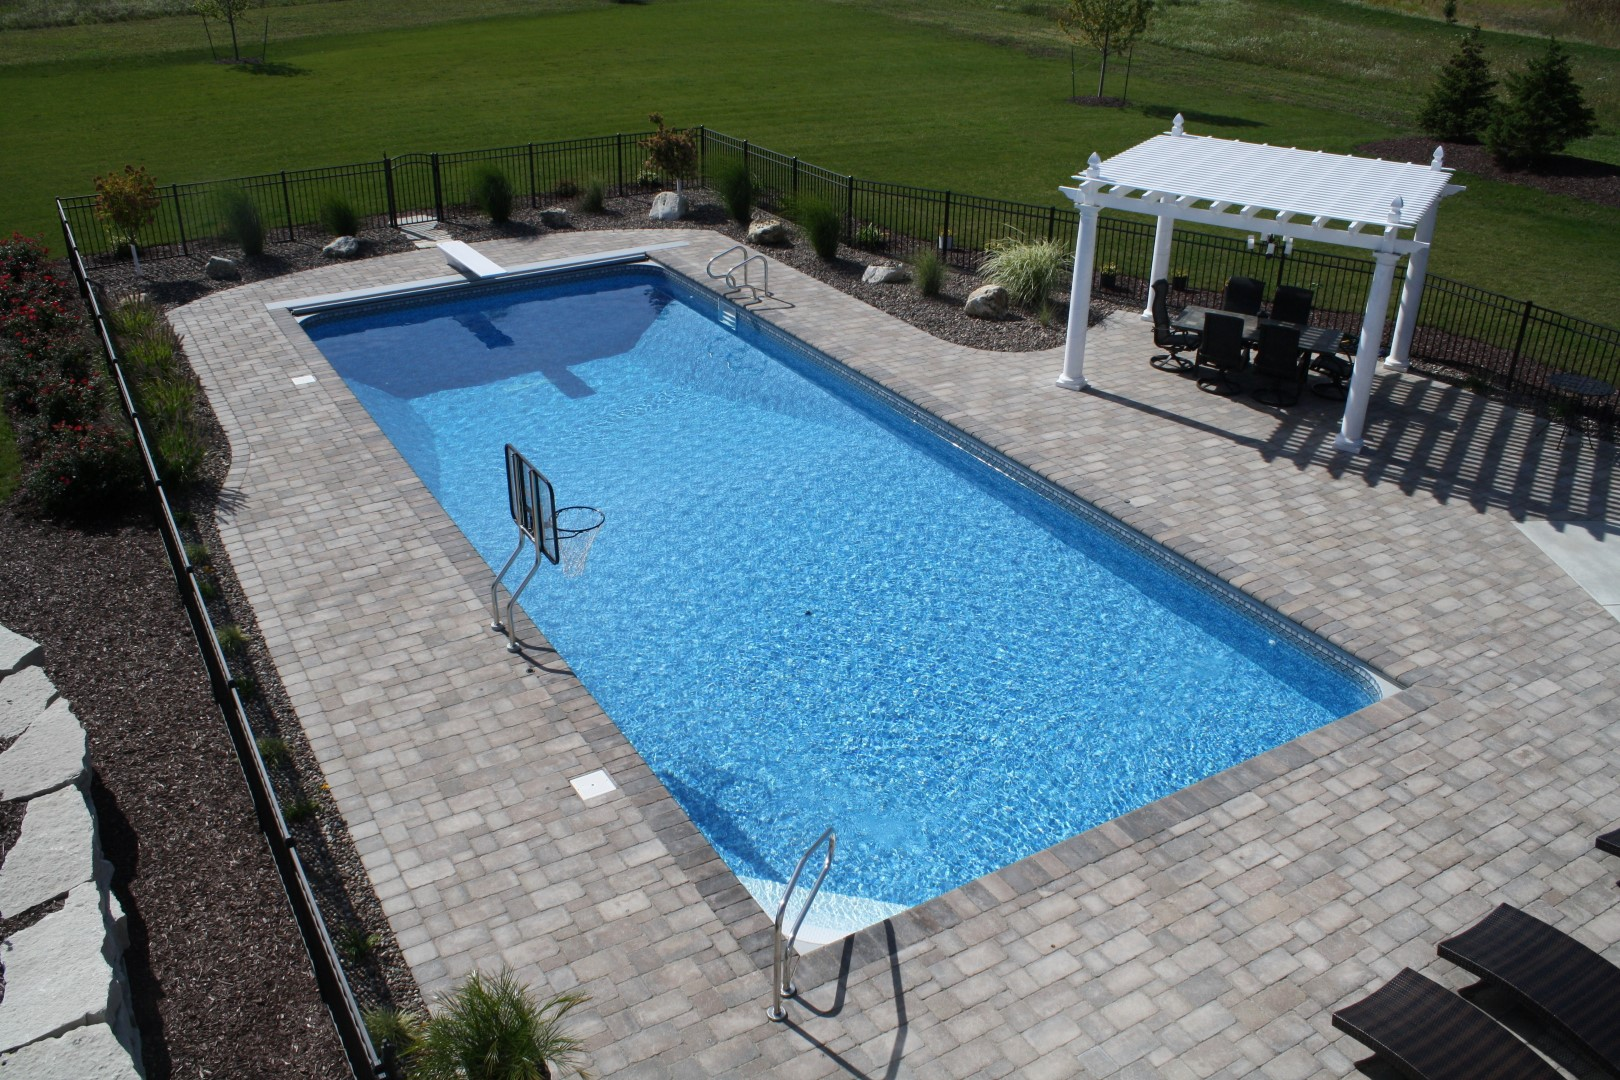 Pool Decking For An Inground Pool Can Be Concrete Stone